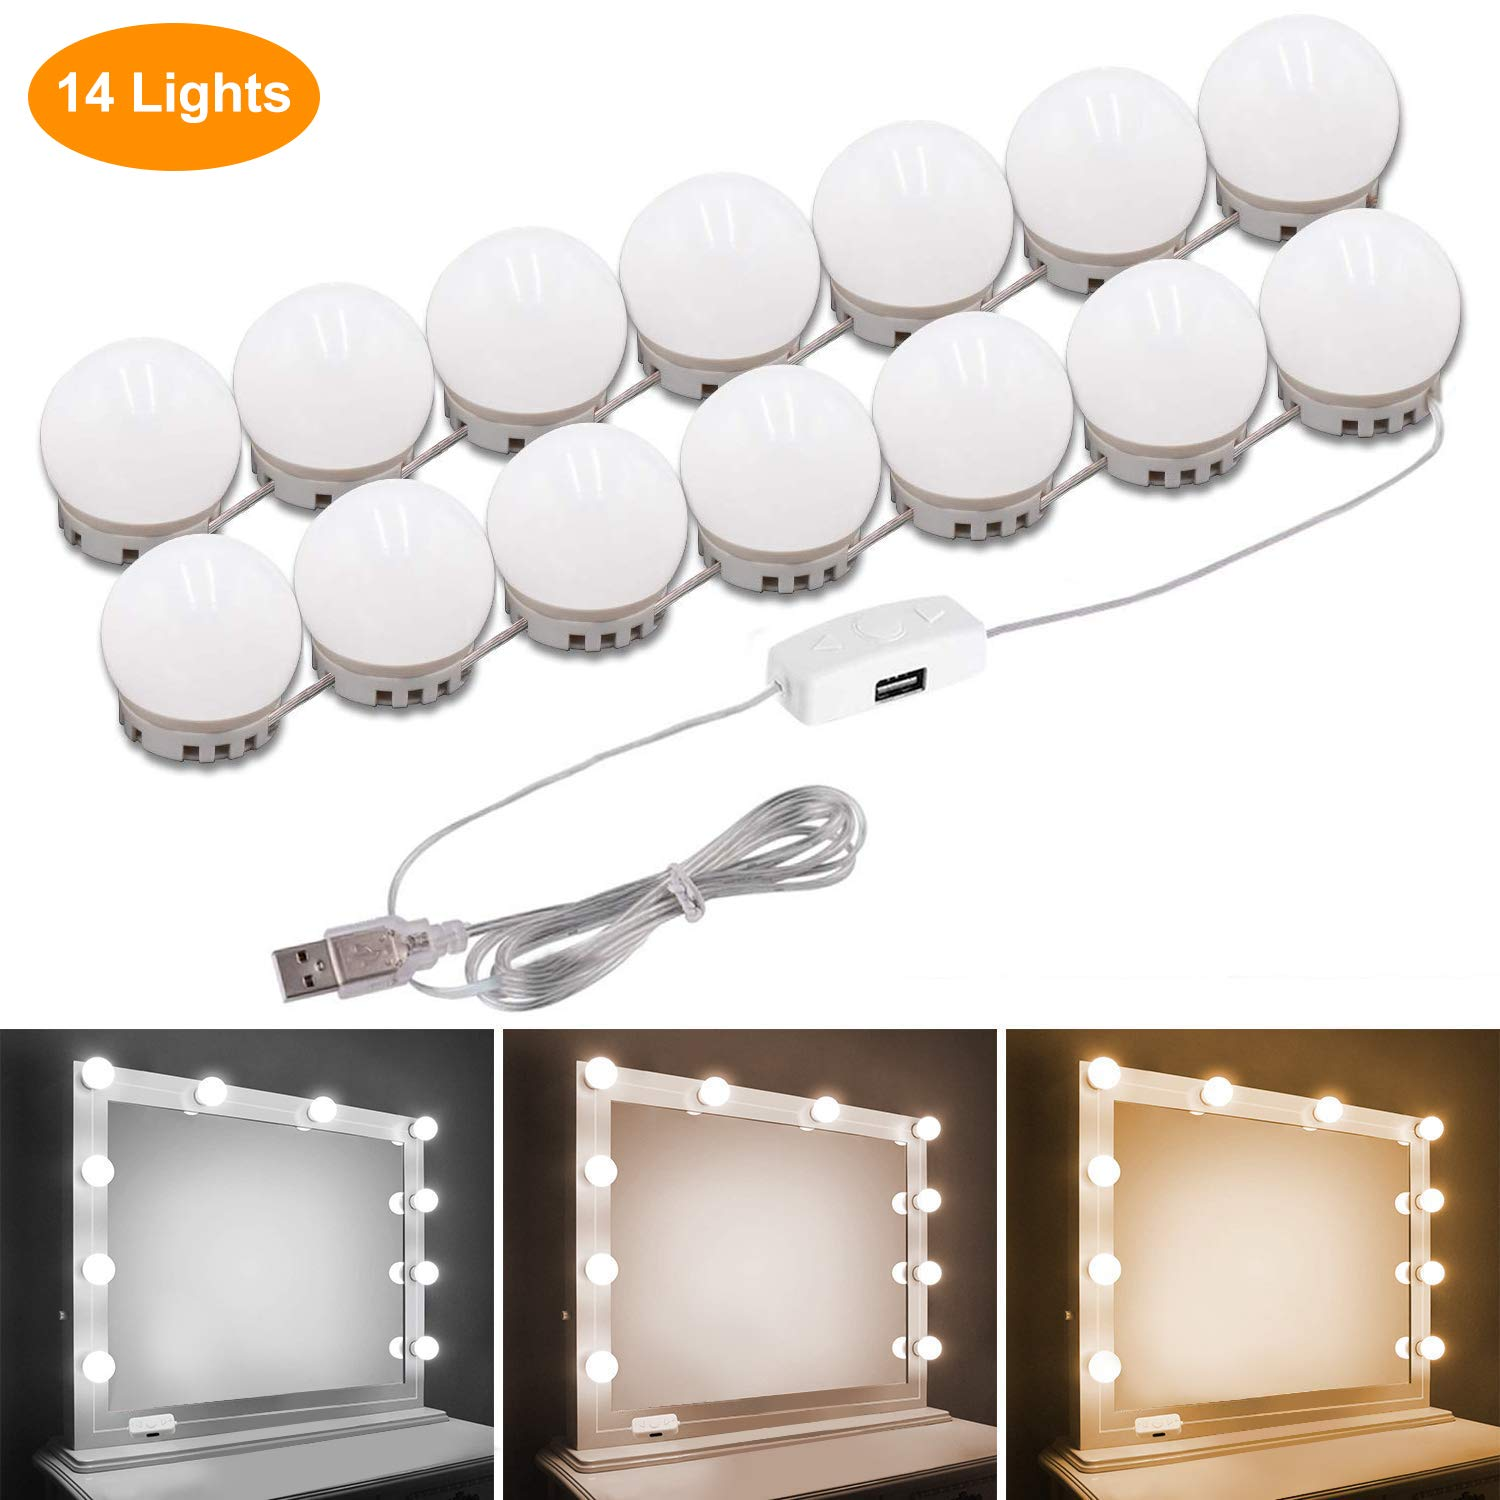 Pretmess Hollywood Style Vanity Mirror Lights Kit, Adjustable Color and Brightness with 14 LED Light Bulbs, Lighting Fixture Strip for Makeup Vanity Table Set in Dressing Room (Mirror Not Include)